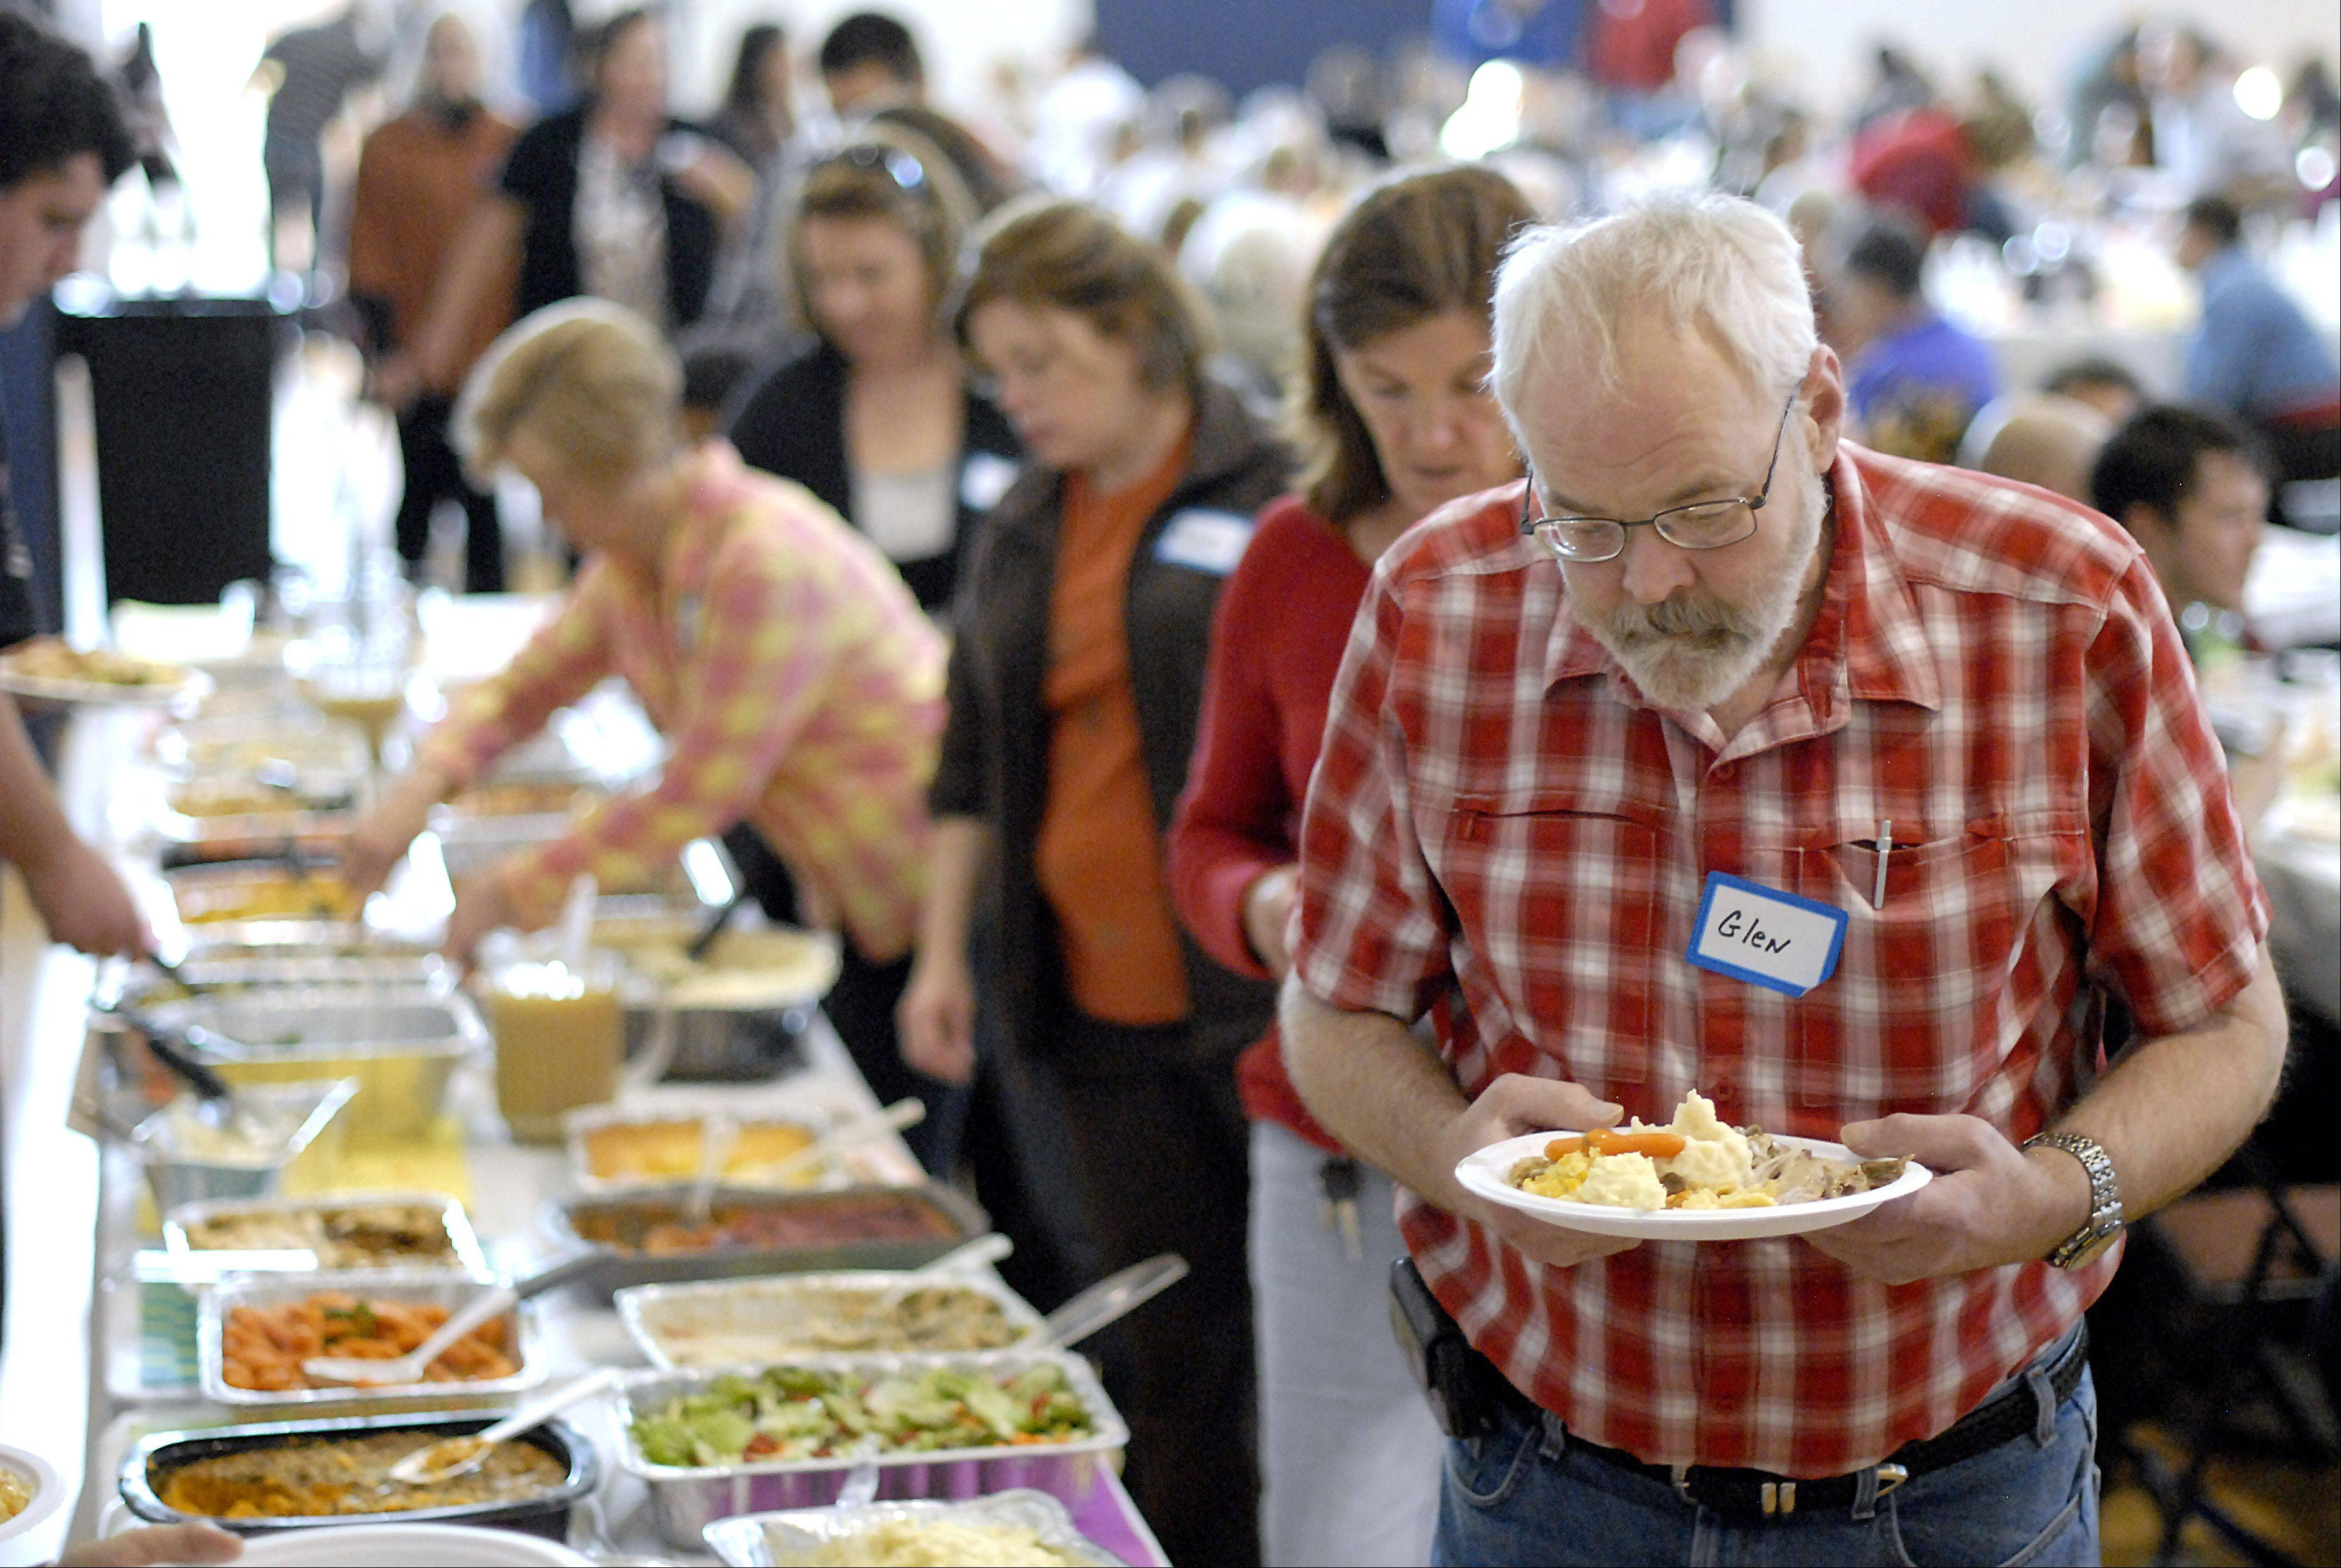 Glen Ostgaard of Geneva fills a plate at Lazarus House's annual Thanksgiving Day dinner at the Salvation Army in St. Charles. Ostgaard has been coming to the dinner for the last several years.